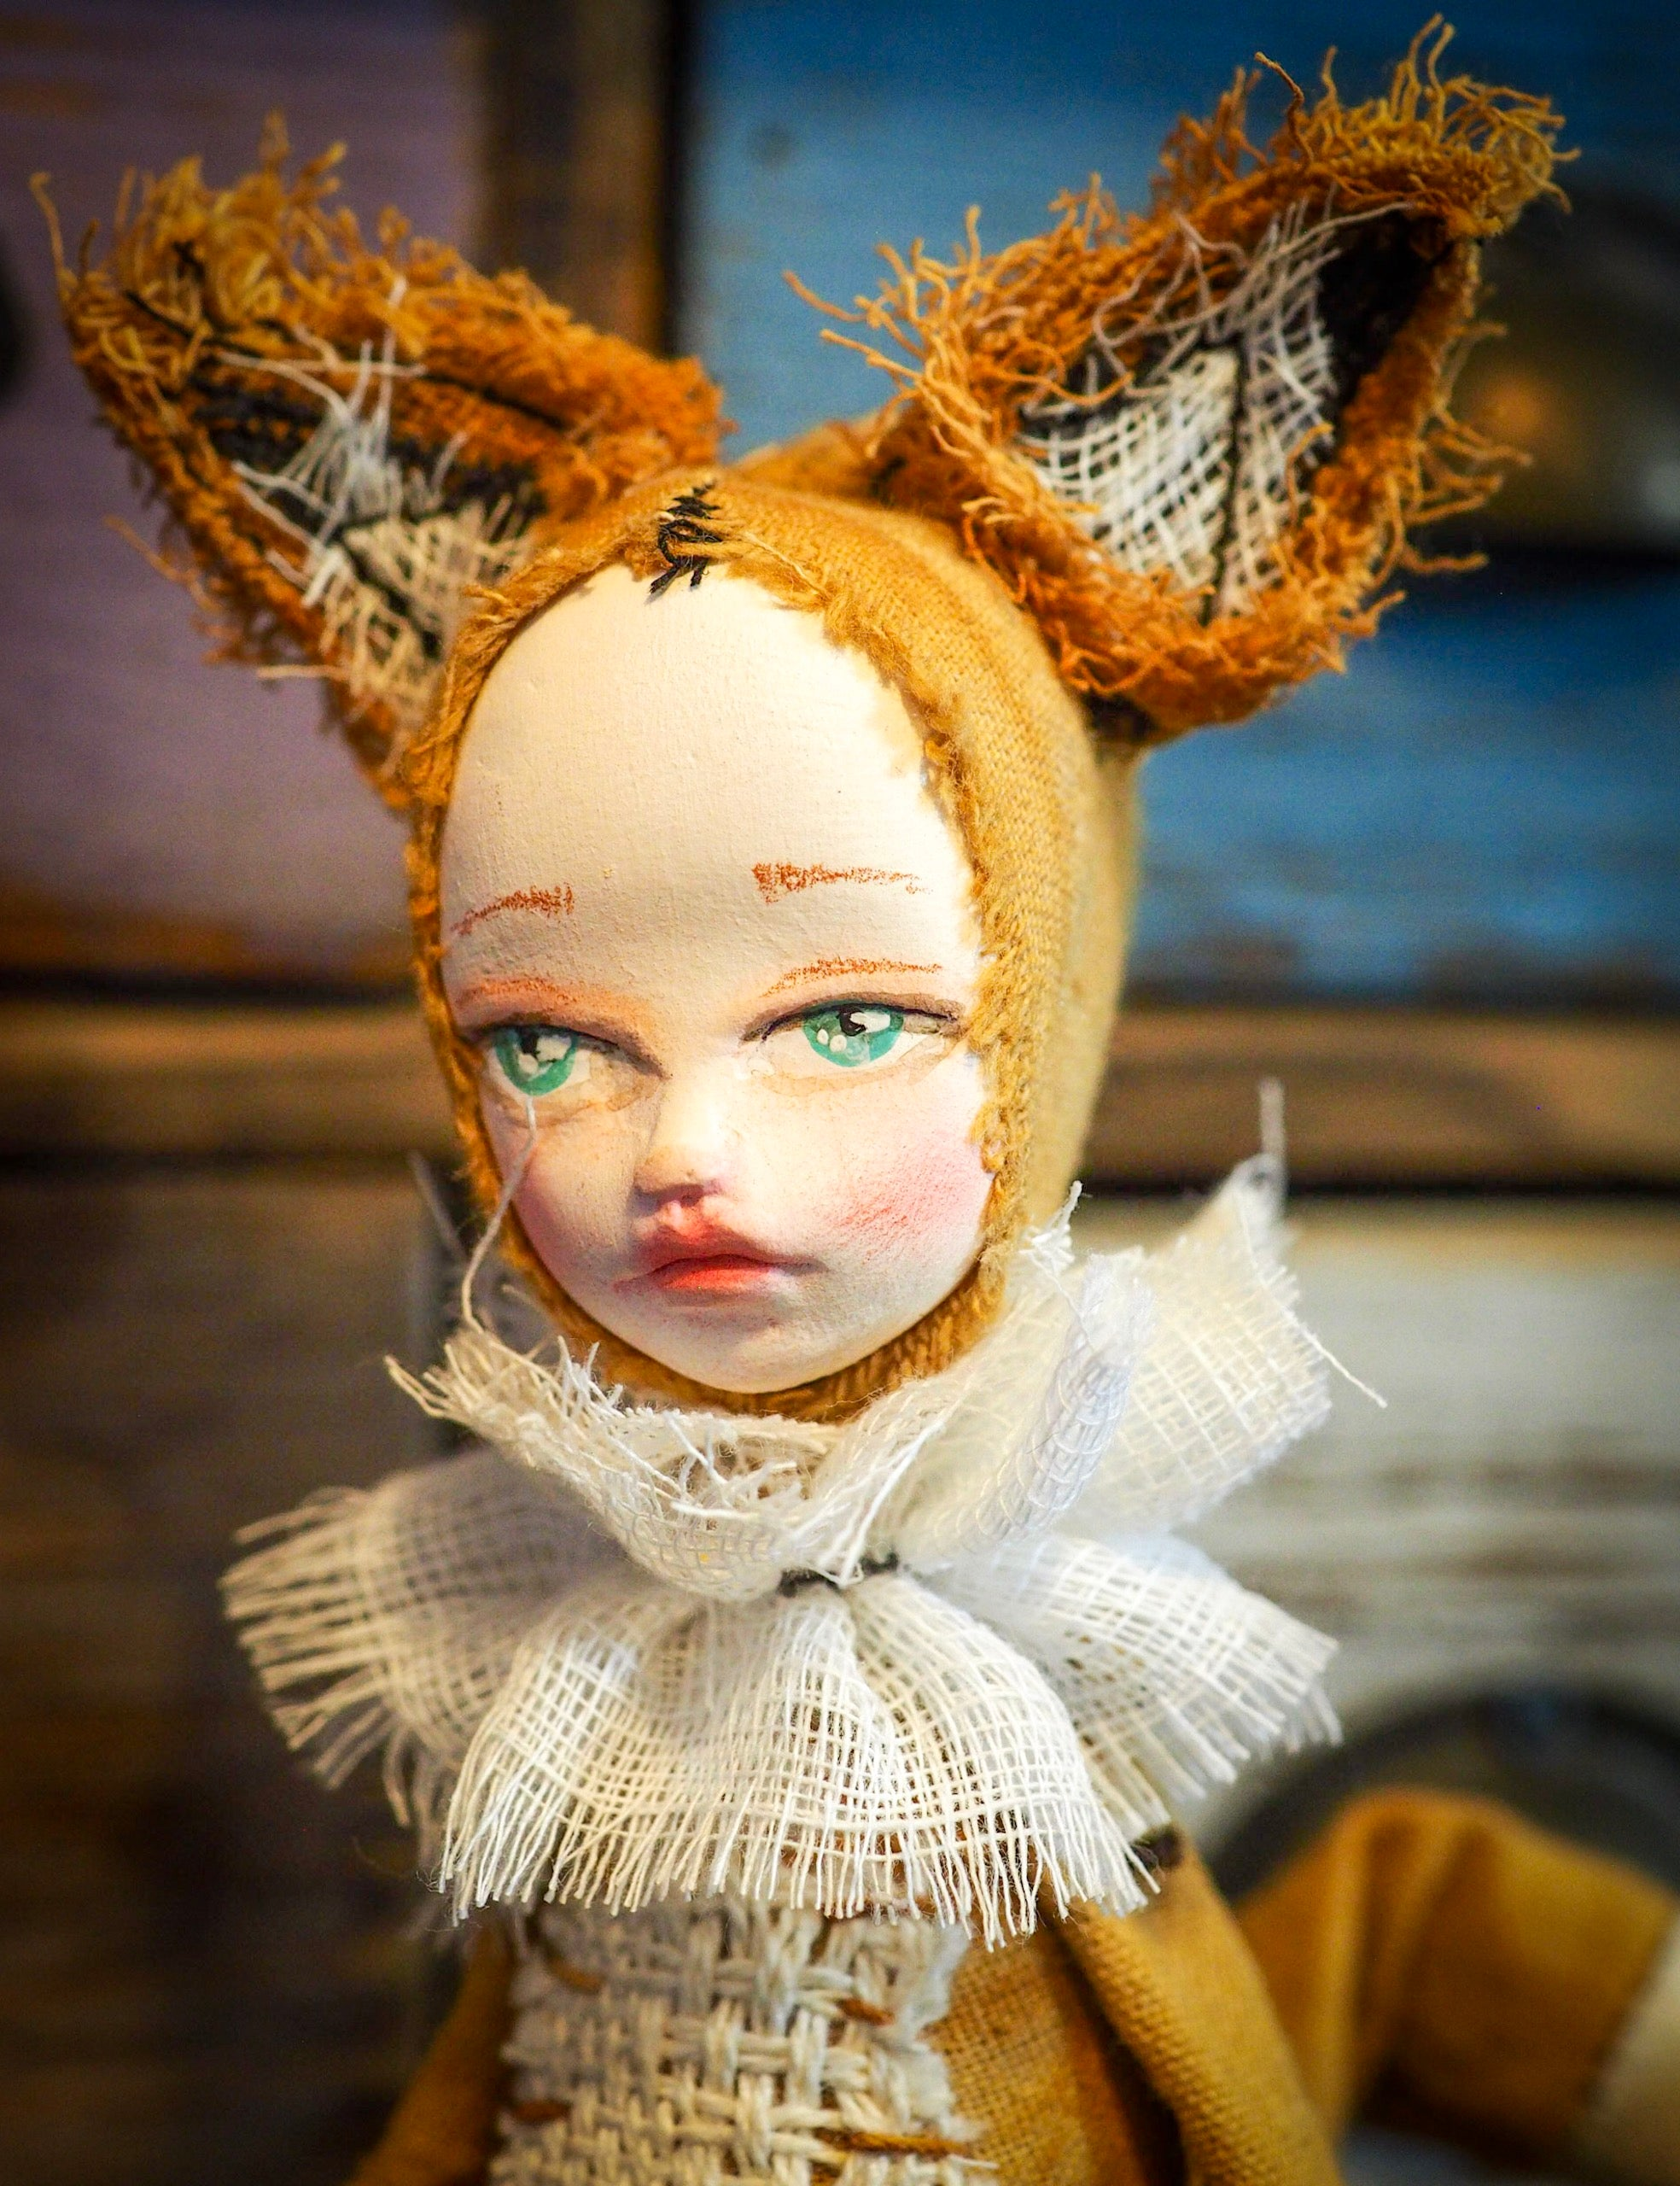 THE FOX - An original handmade doll by Danita Art, made with original patterns, organic fabric dyed using only natural ingredients like avocado peels, walnuts and marigolds. Each mini art doll in this toy collection is a mini work of huggable fabric art to be treasured by any collector of Danita's melancholic and fantastic work.